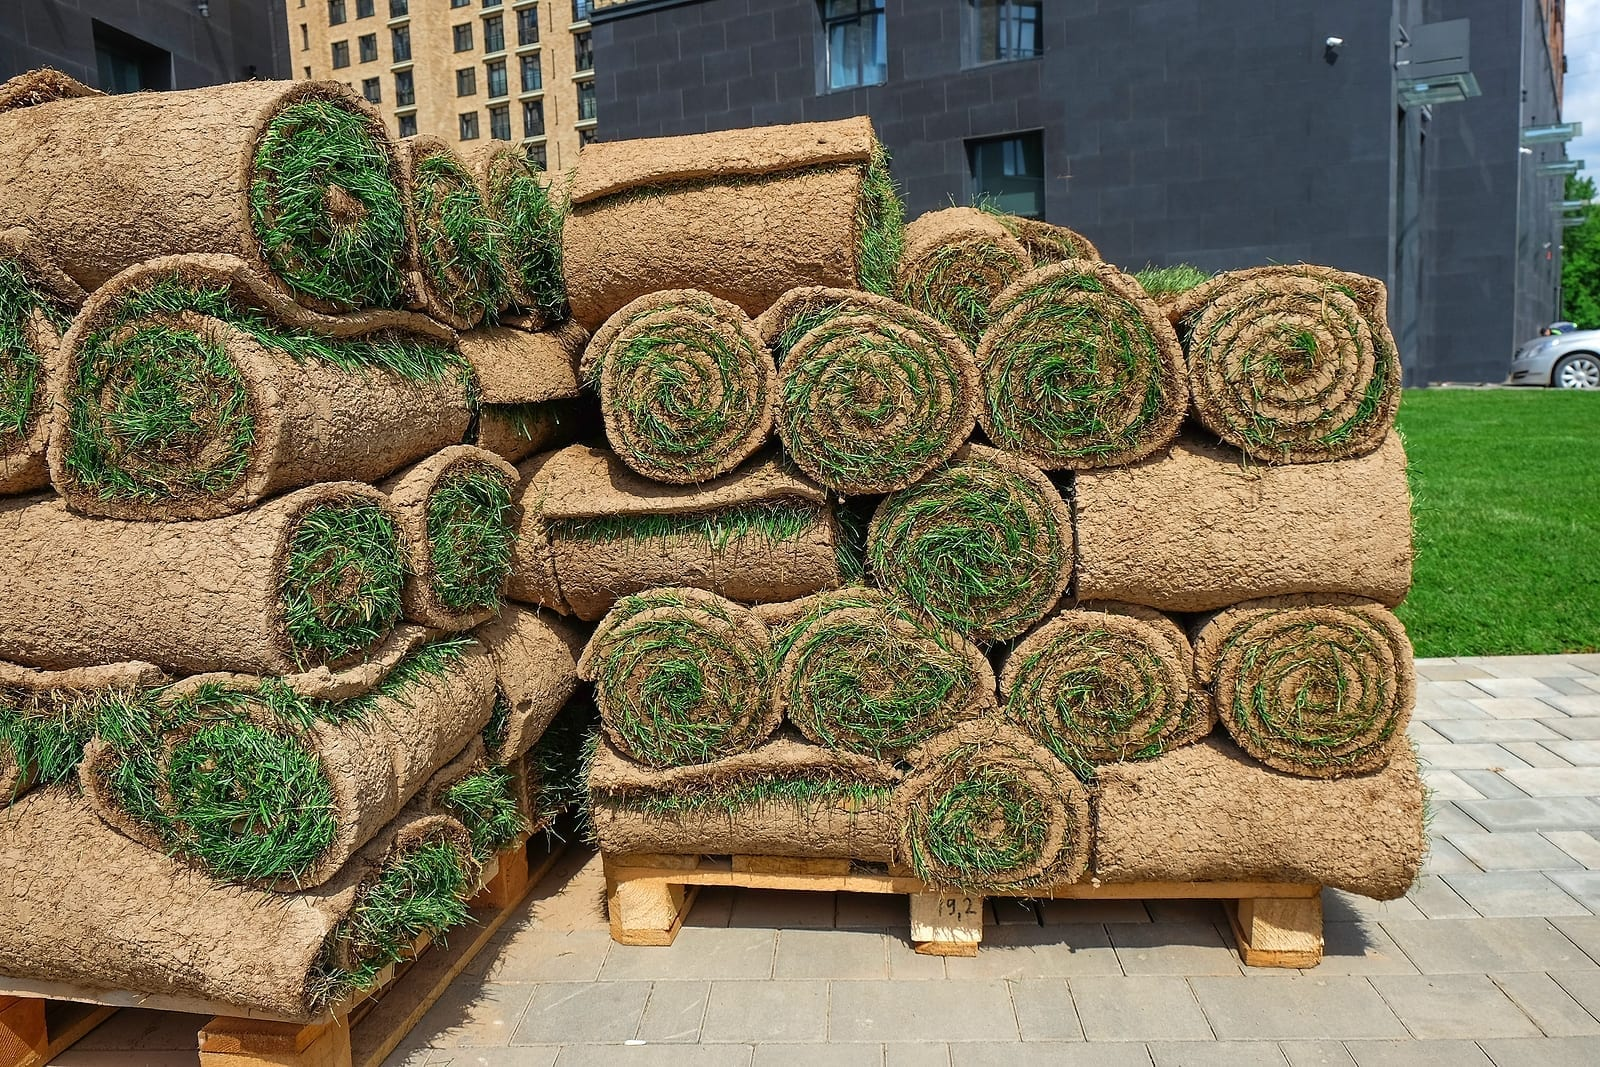 Albuquerque Sod Lawn—How to Install it So it is Successful by R & S Landscaping 505-271-8419